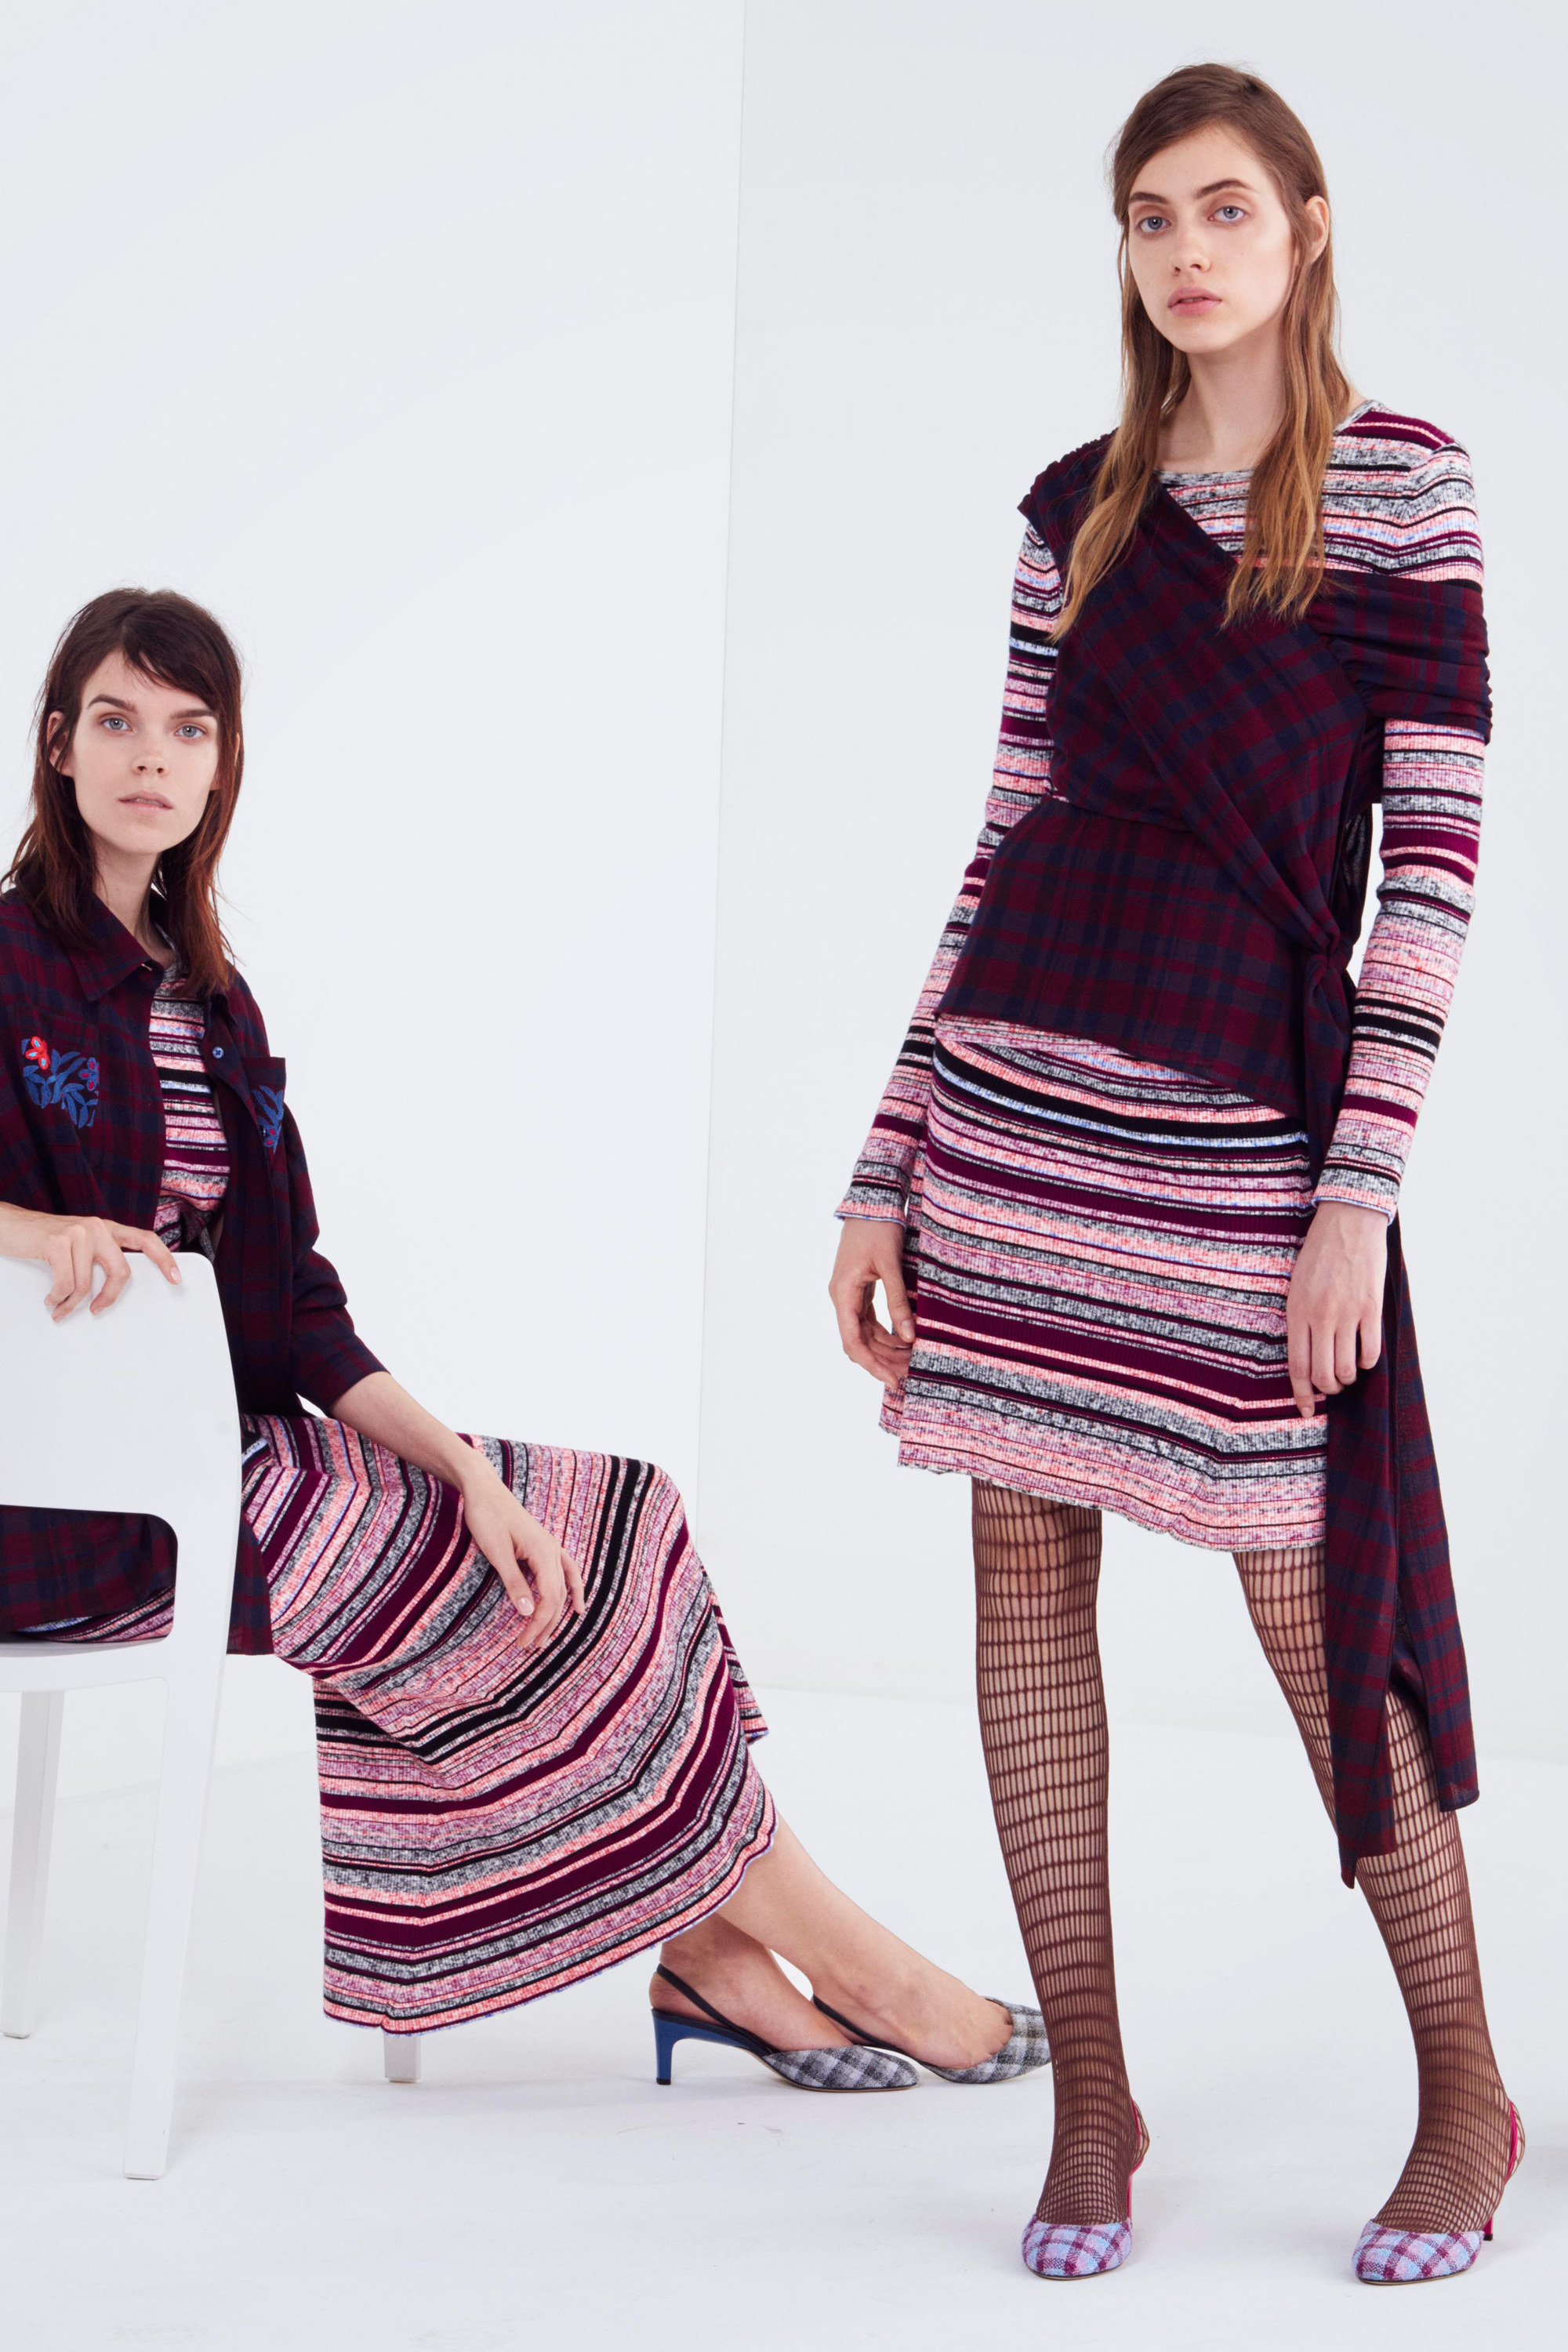 tanya-taylor-pre-fall-2016-lookbook-04.jpg